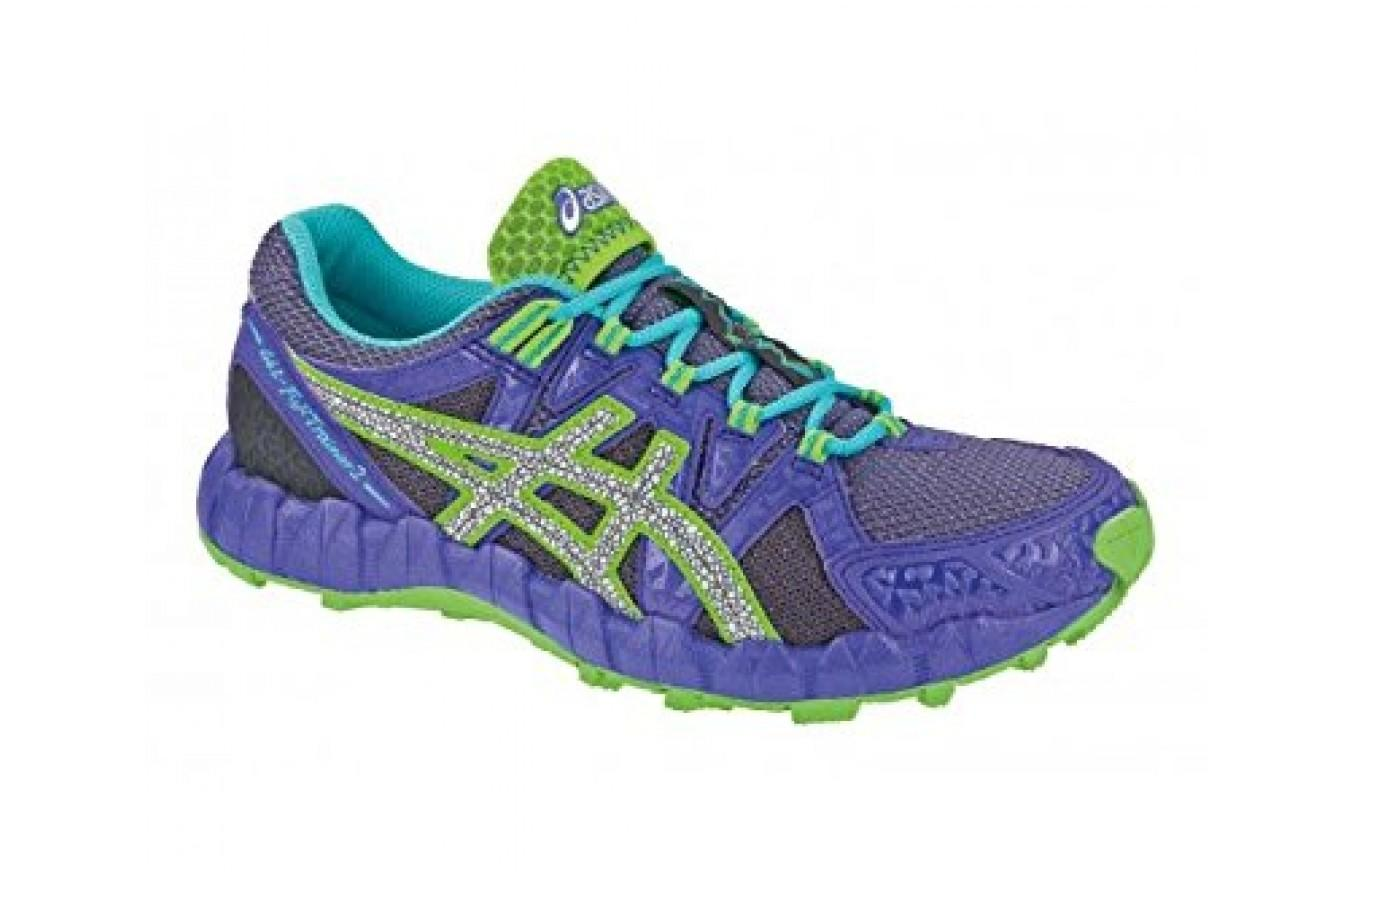 Women's Asics Gel Fuji Trainer 2 in purple and lime ...